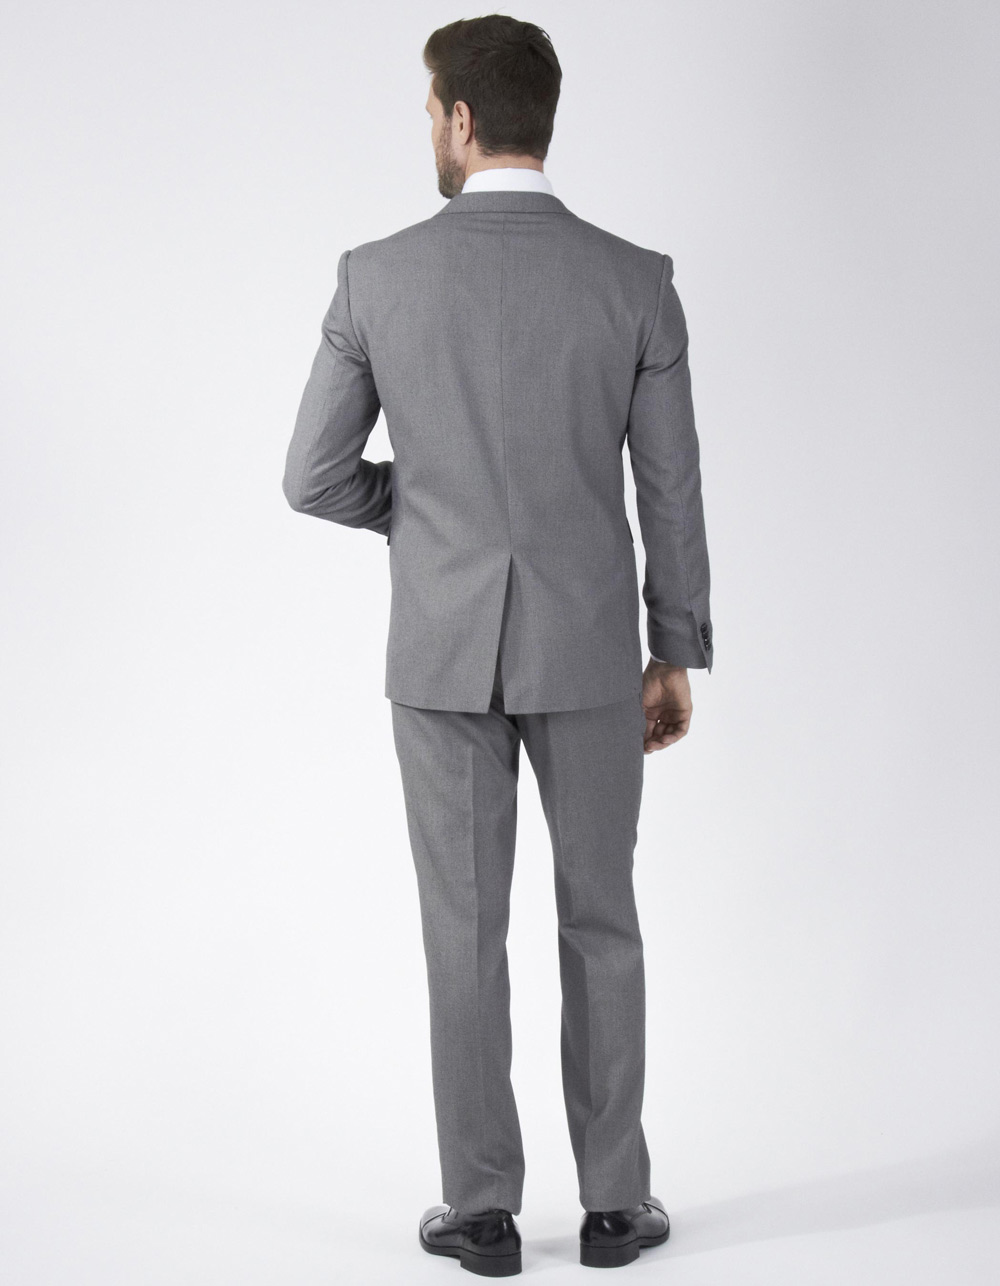 Grey fabric tweed suit - Backside